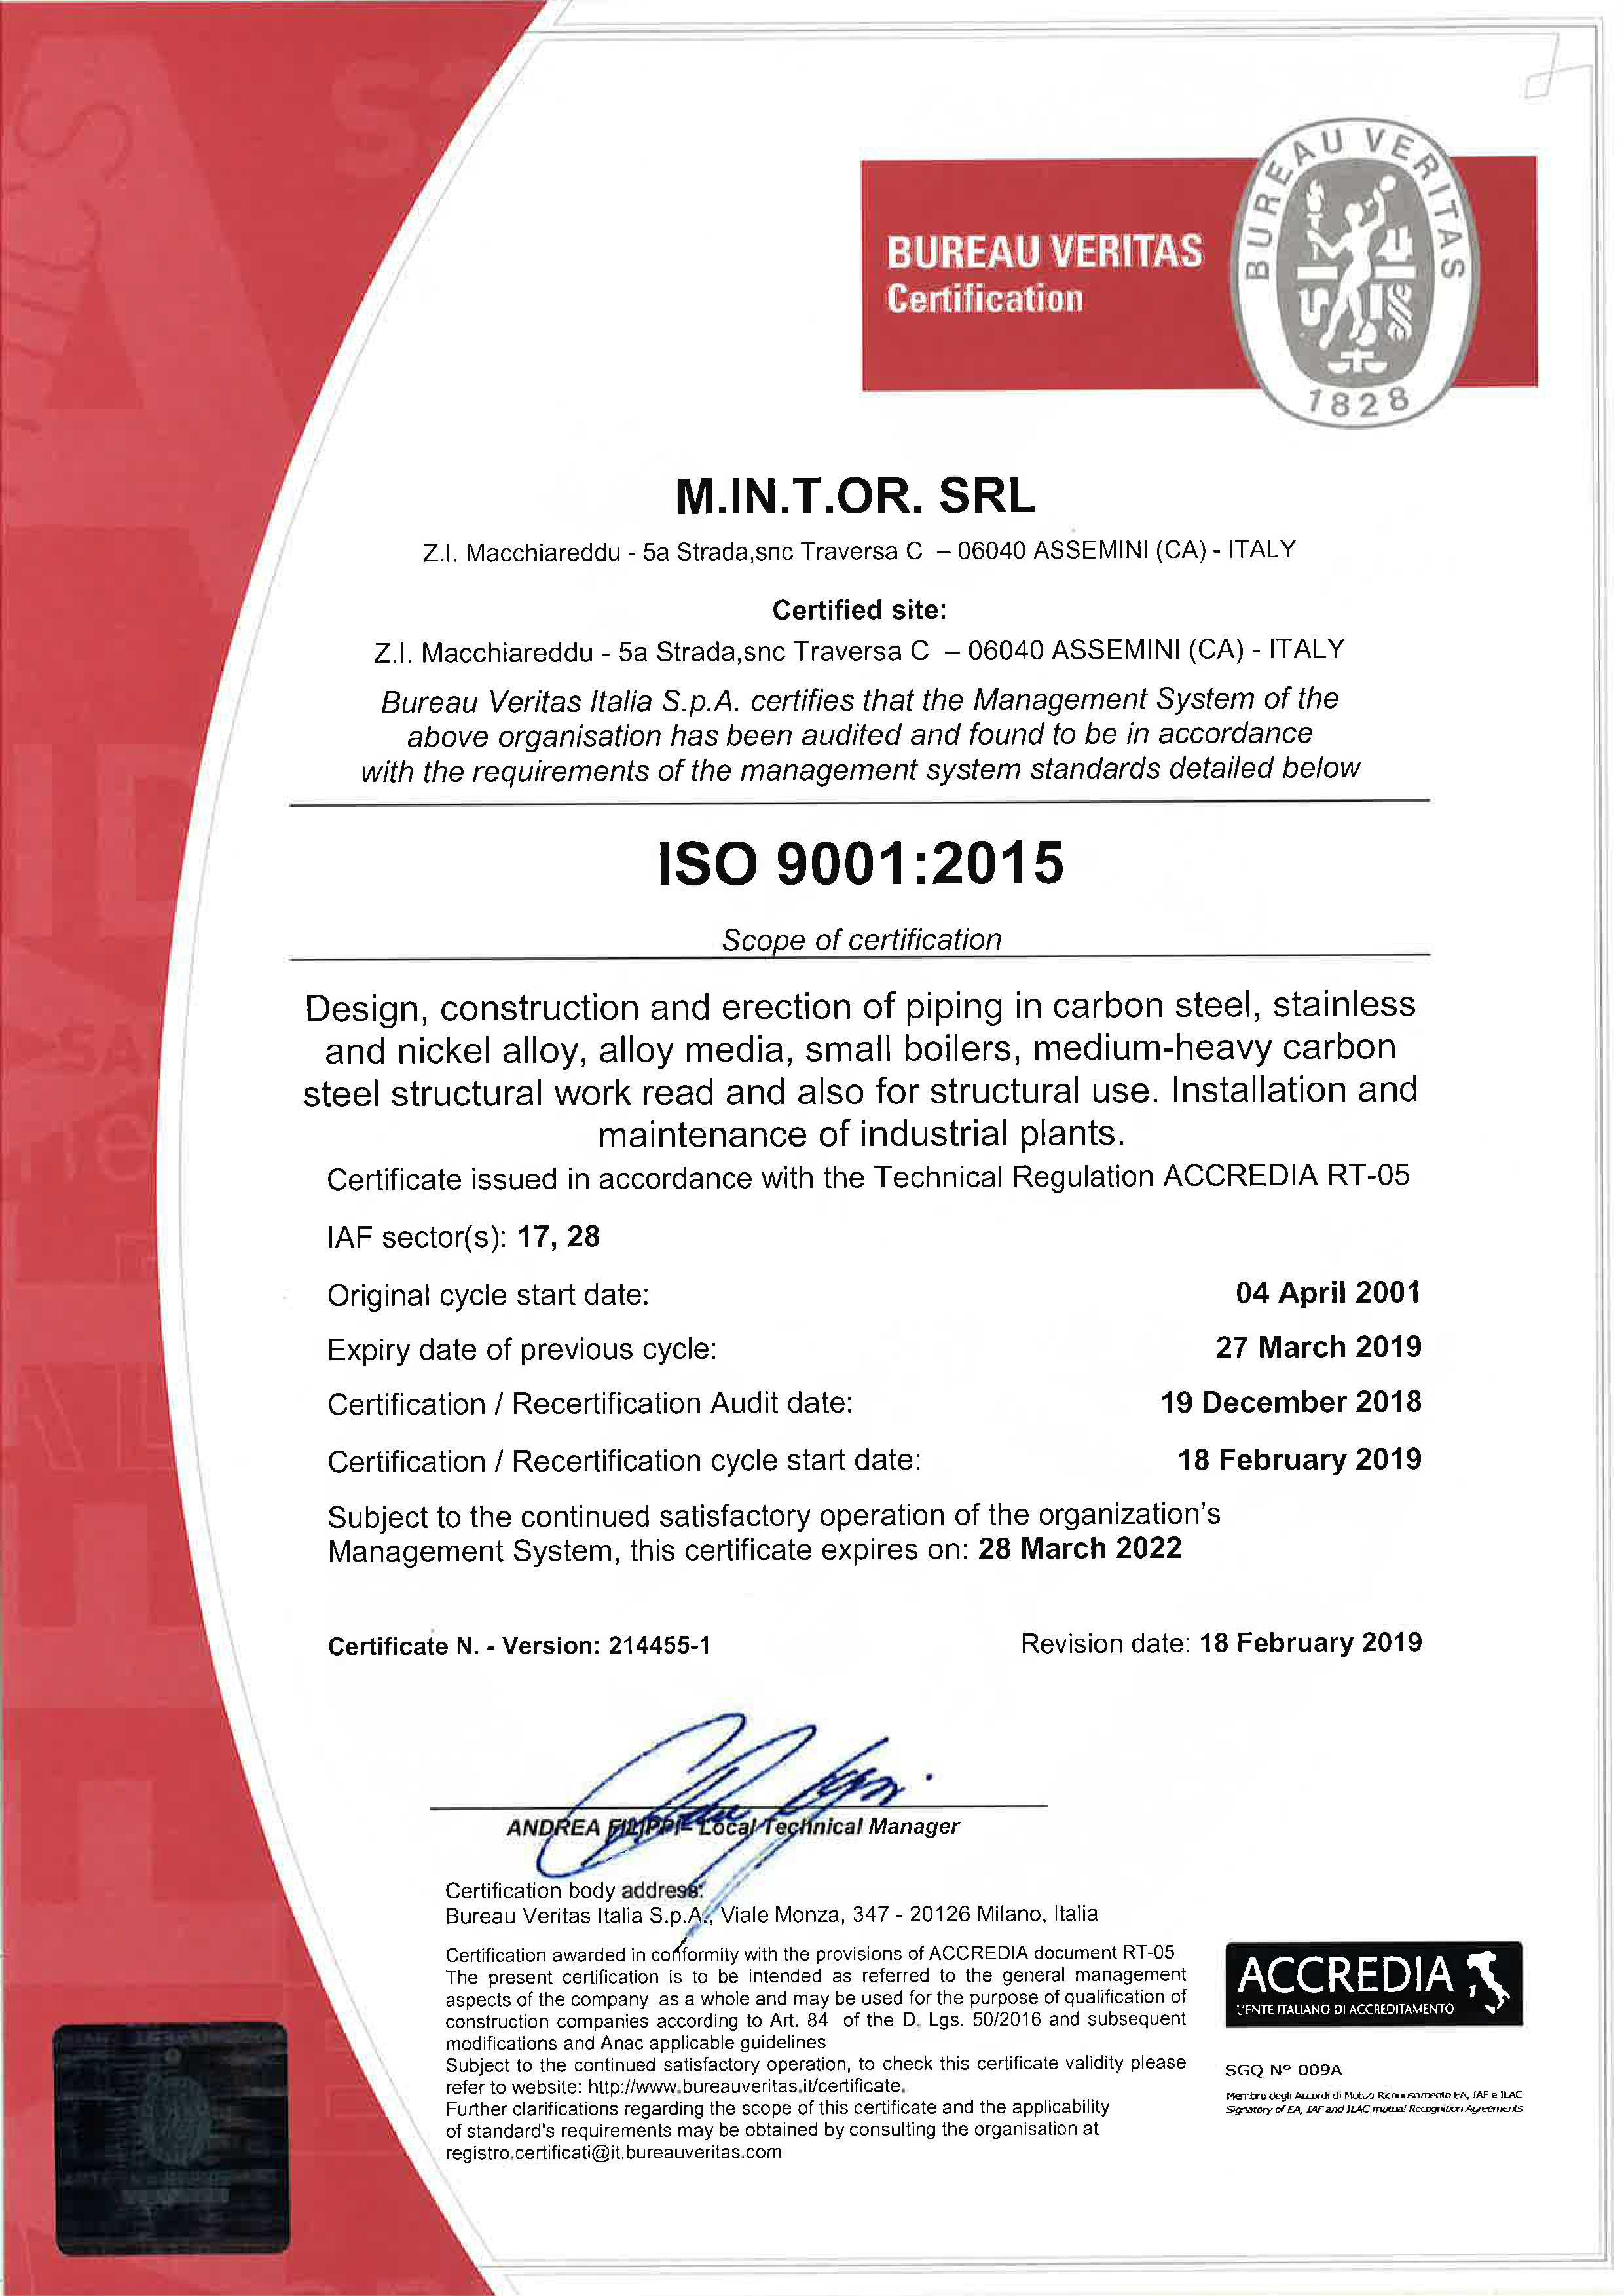 certificazioni-mintor-luglio-2019_0003_M.IN.T.OR. SRL- SCAN 9001 ING